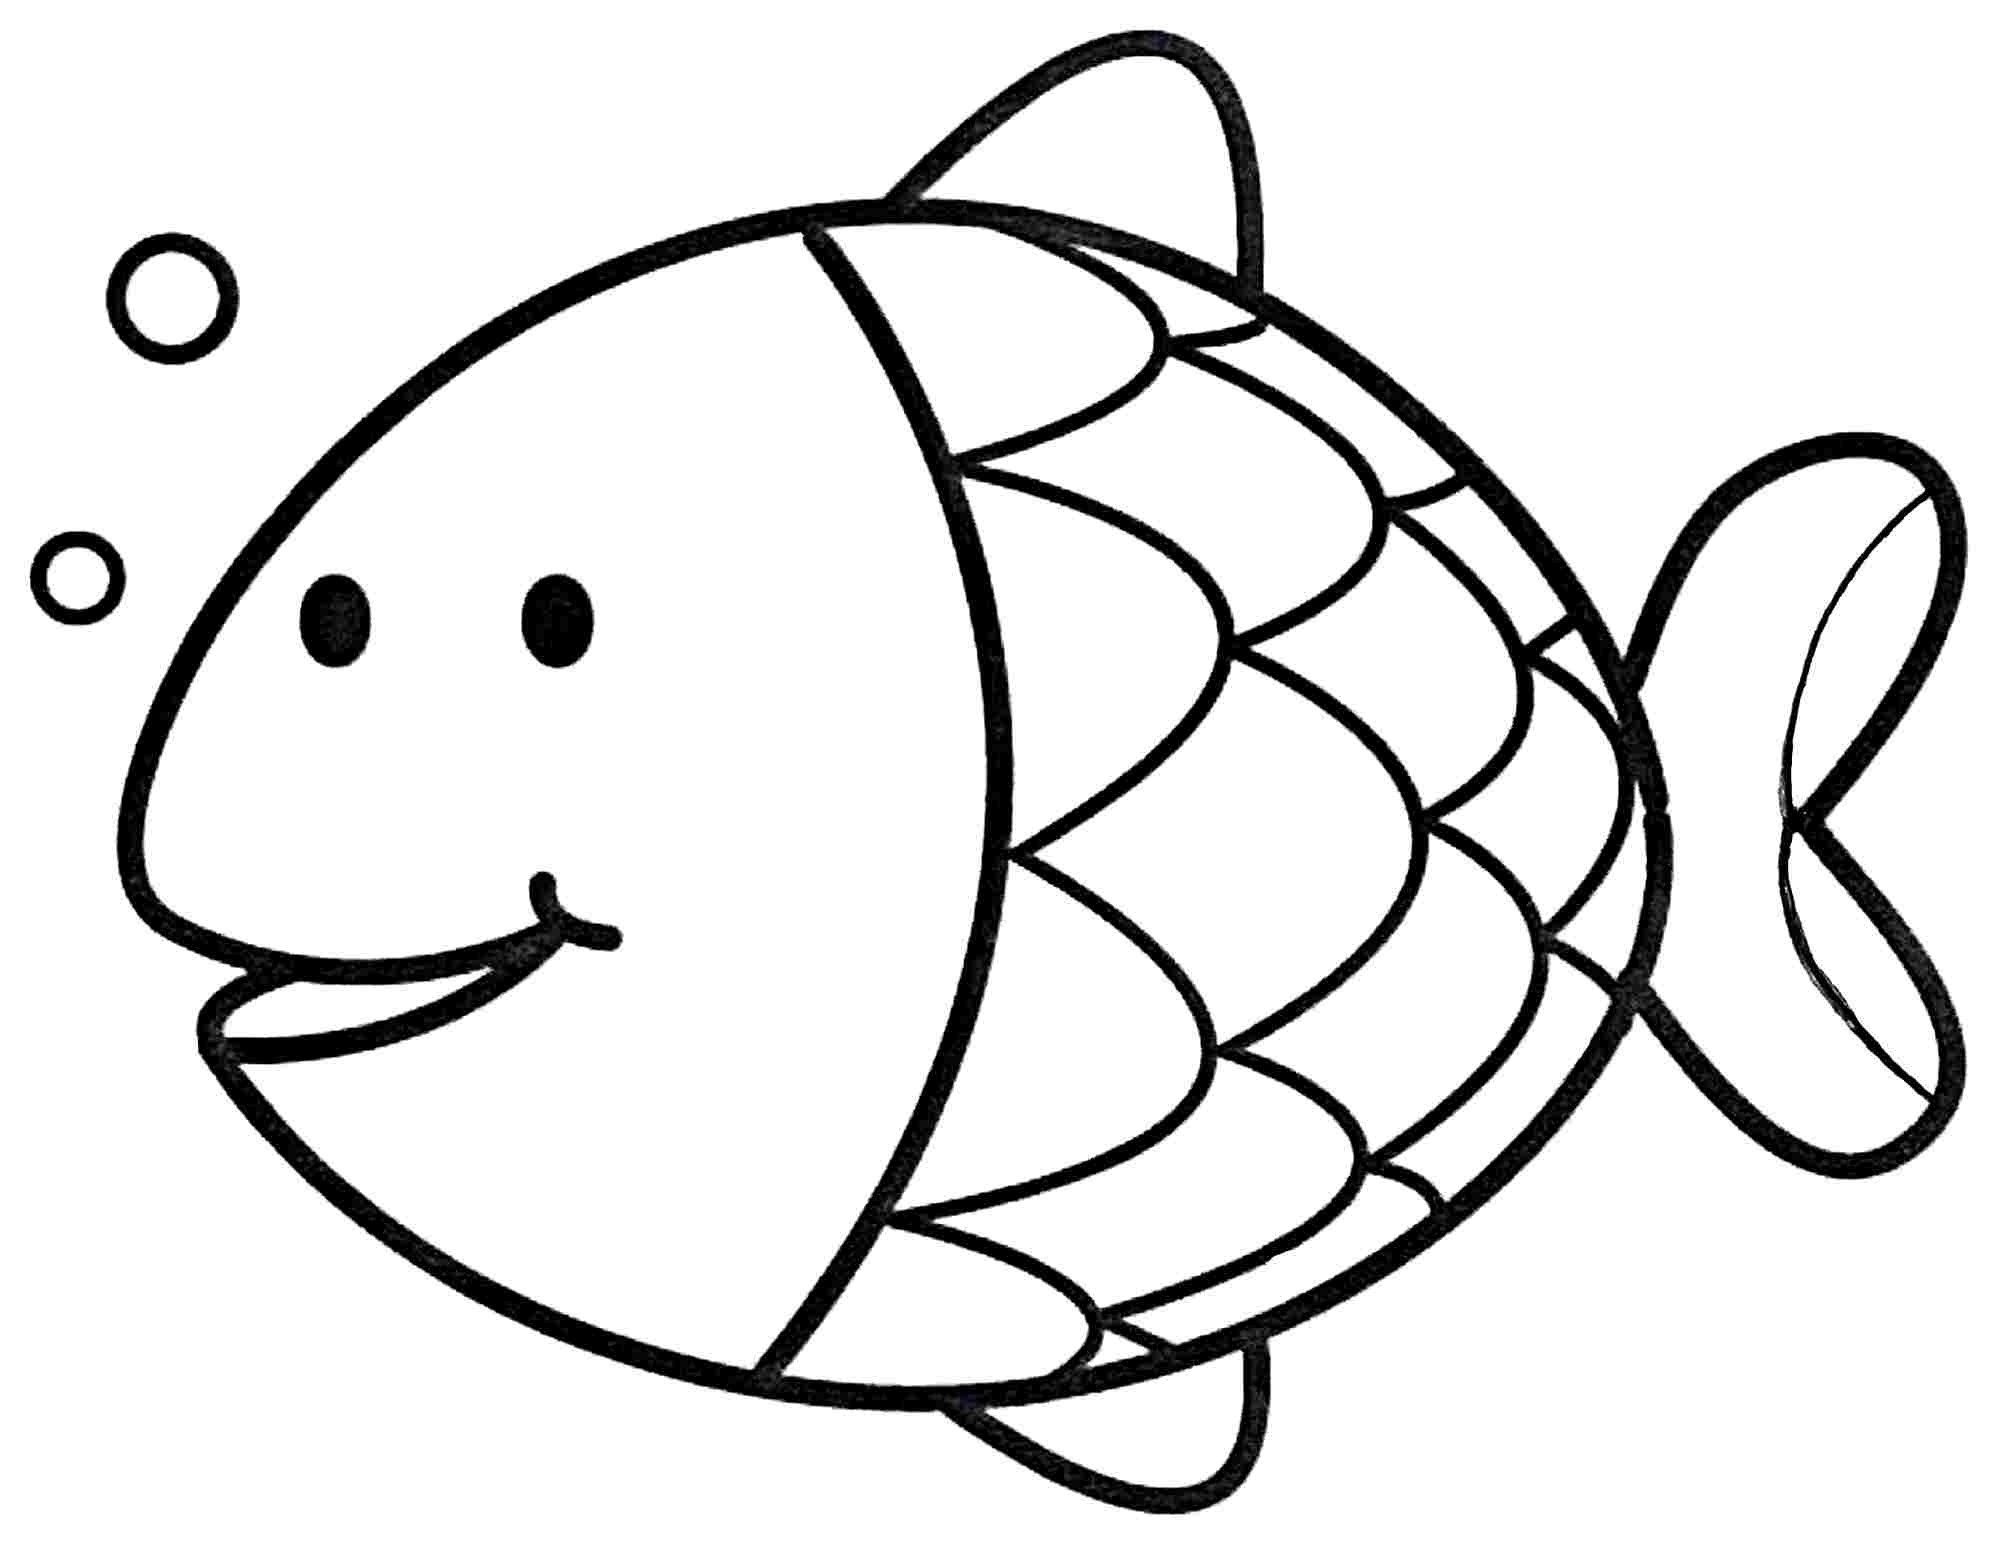 Goldfish Coloring Page Easy Coloring Sheets Save Colouring Pages New Fish Bertmilne Mazhab